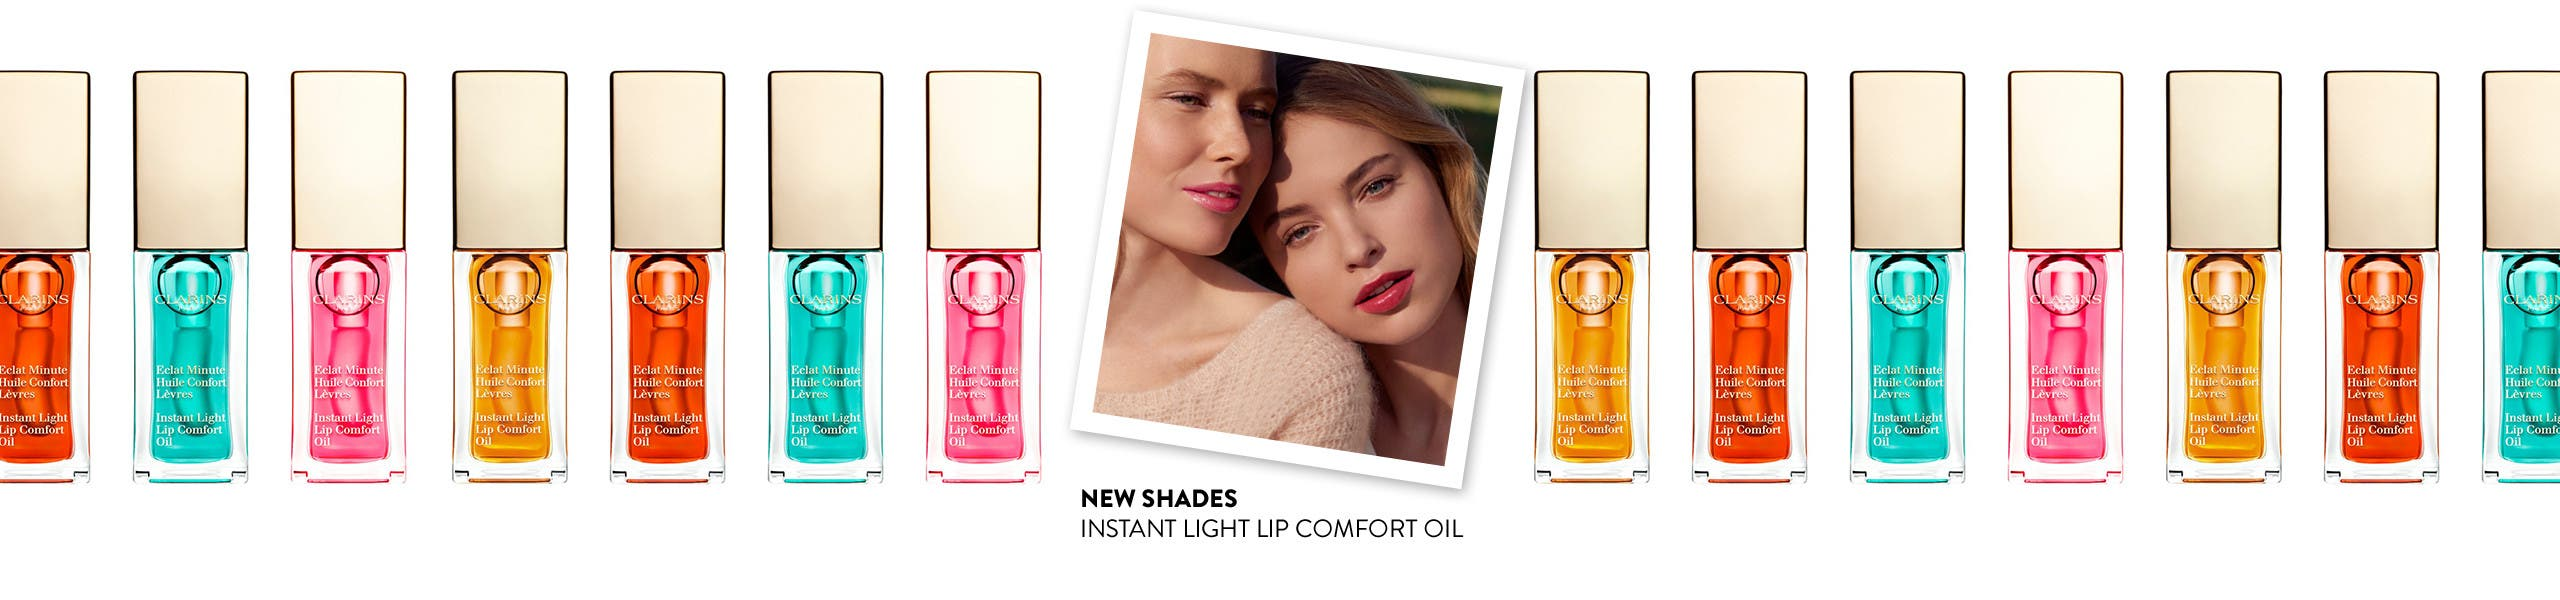 New shades: Instant Light Lip Comfort Oil.